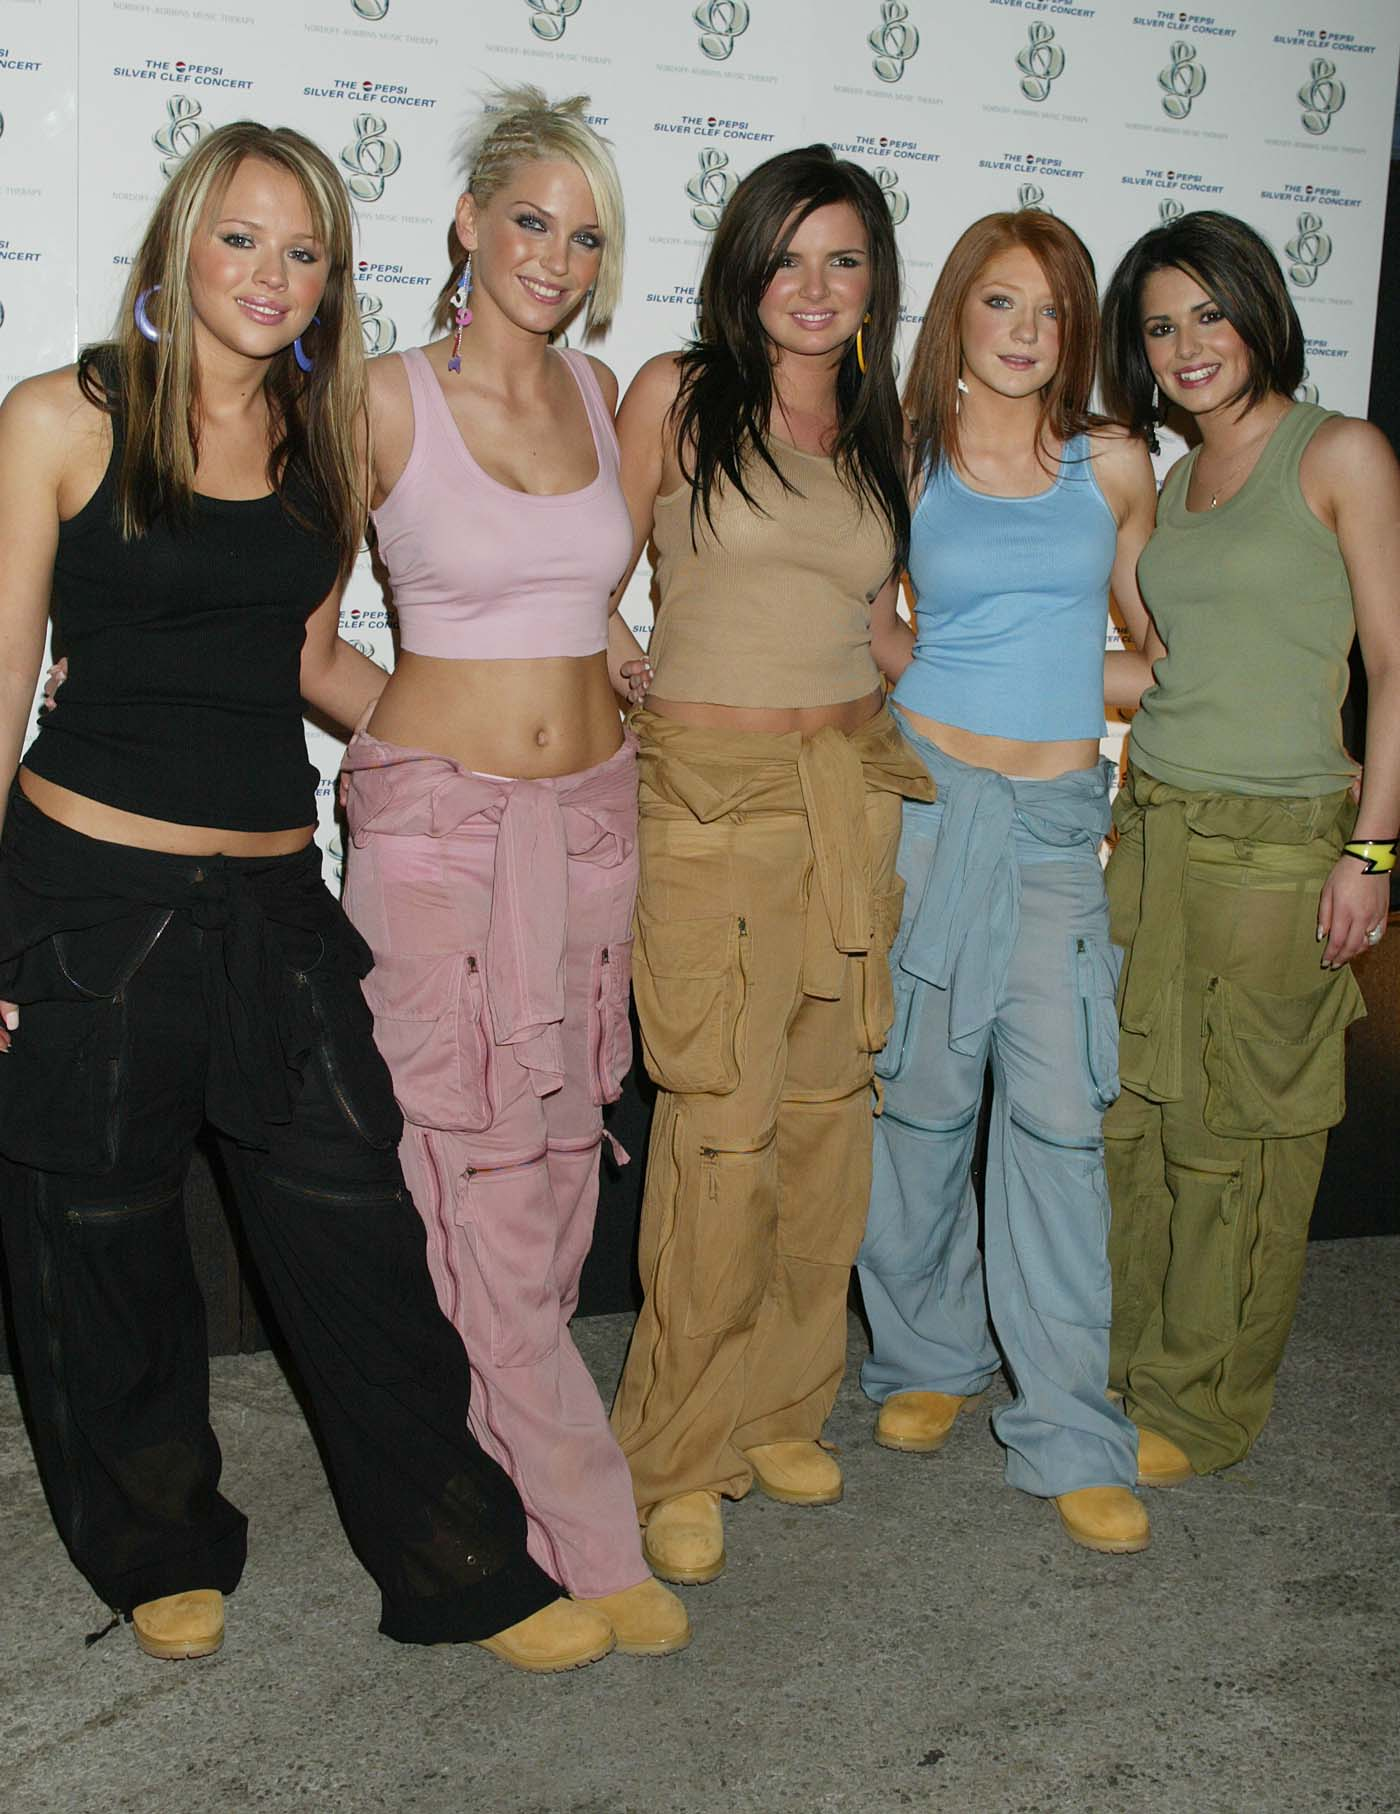 Old High School Fashion Trends 2000s Style  Refinery29